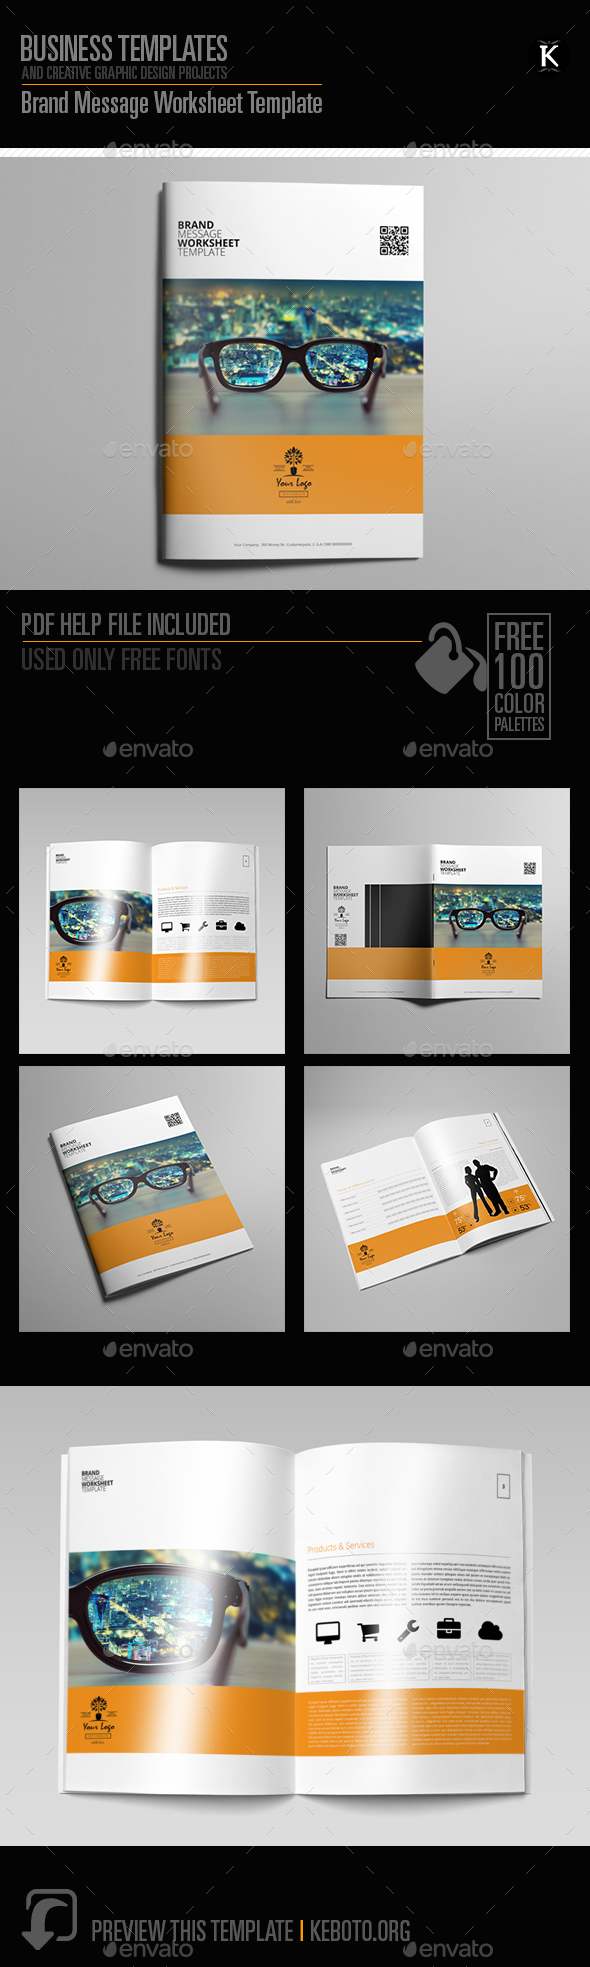 Brand Message Worksheet Template - Miscellaneous Print Templates